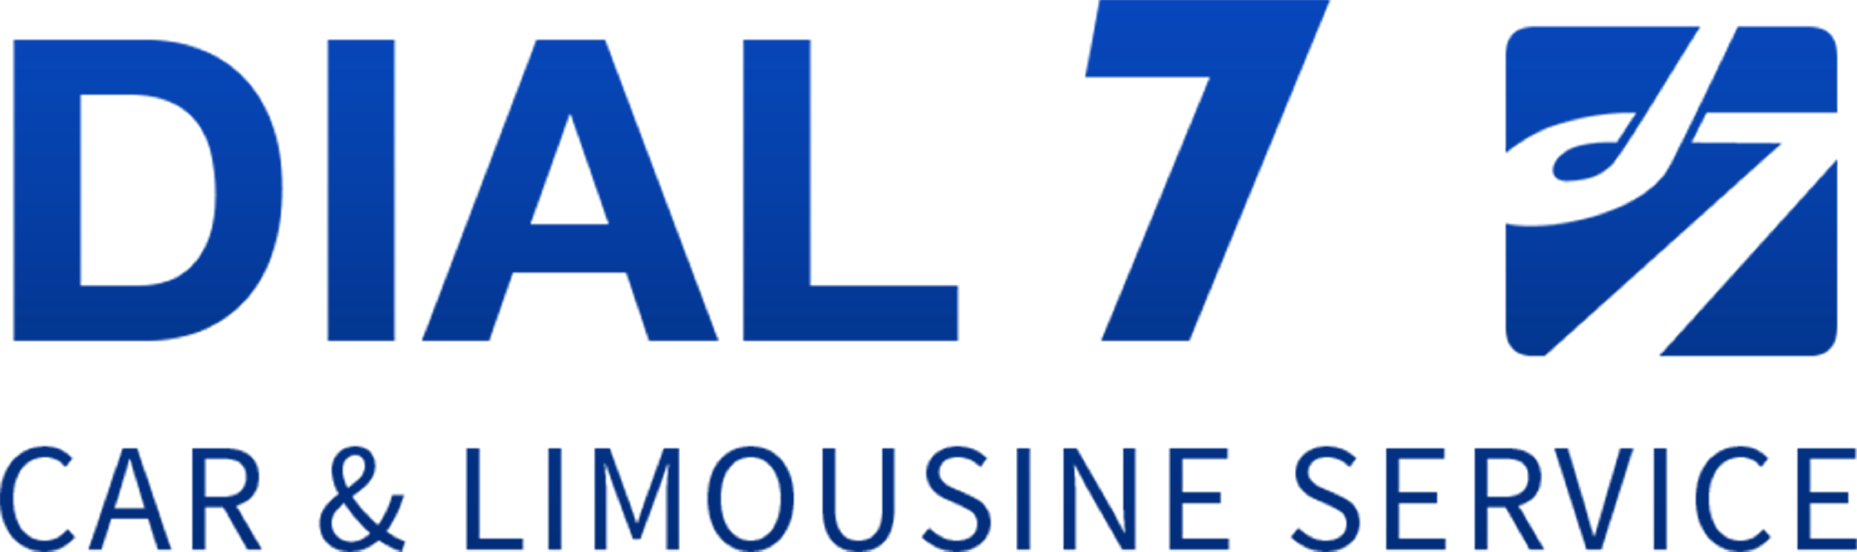 Mar 20, · Has anyone had any experience with Dial 7 transportation? We are needing transportation from the Finicial District in NY to the Cape Liberty Cruise terminal for a cruise in June. There are 5 adults with 1 piece of luggage each. The price I .